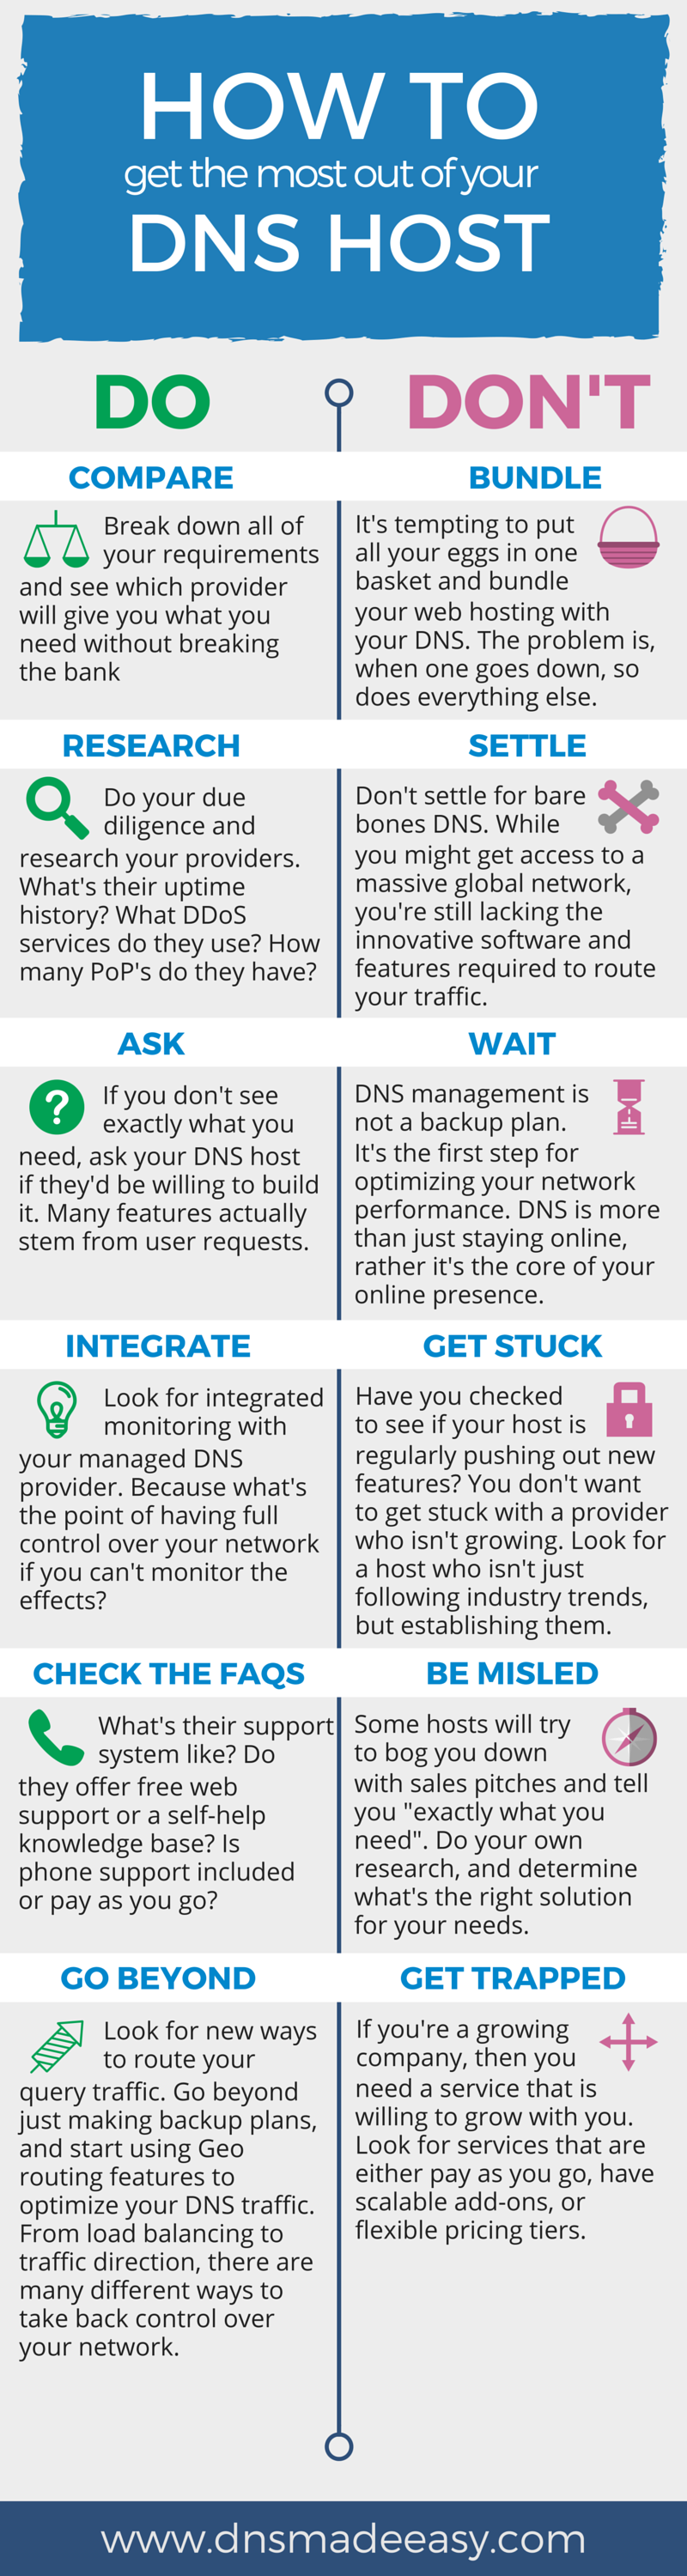 Do's and Dont's for PIcking a DNS Host